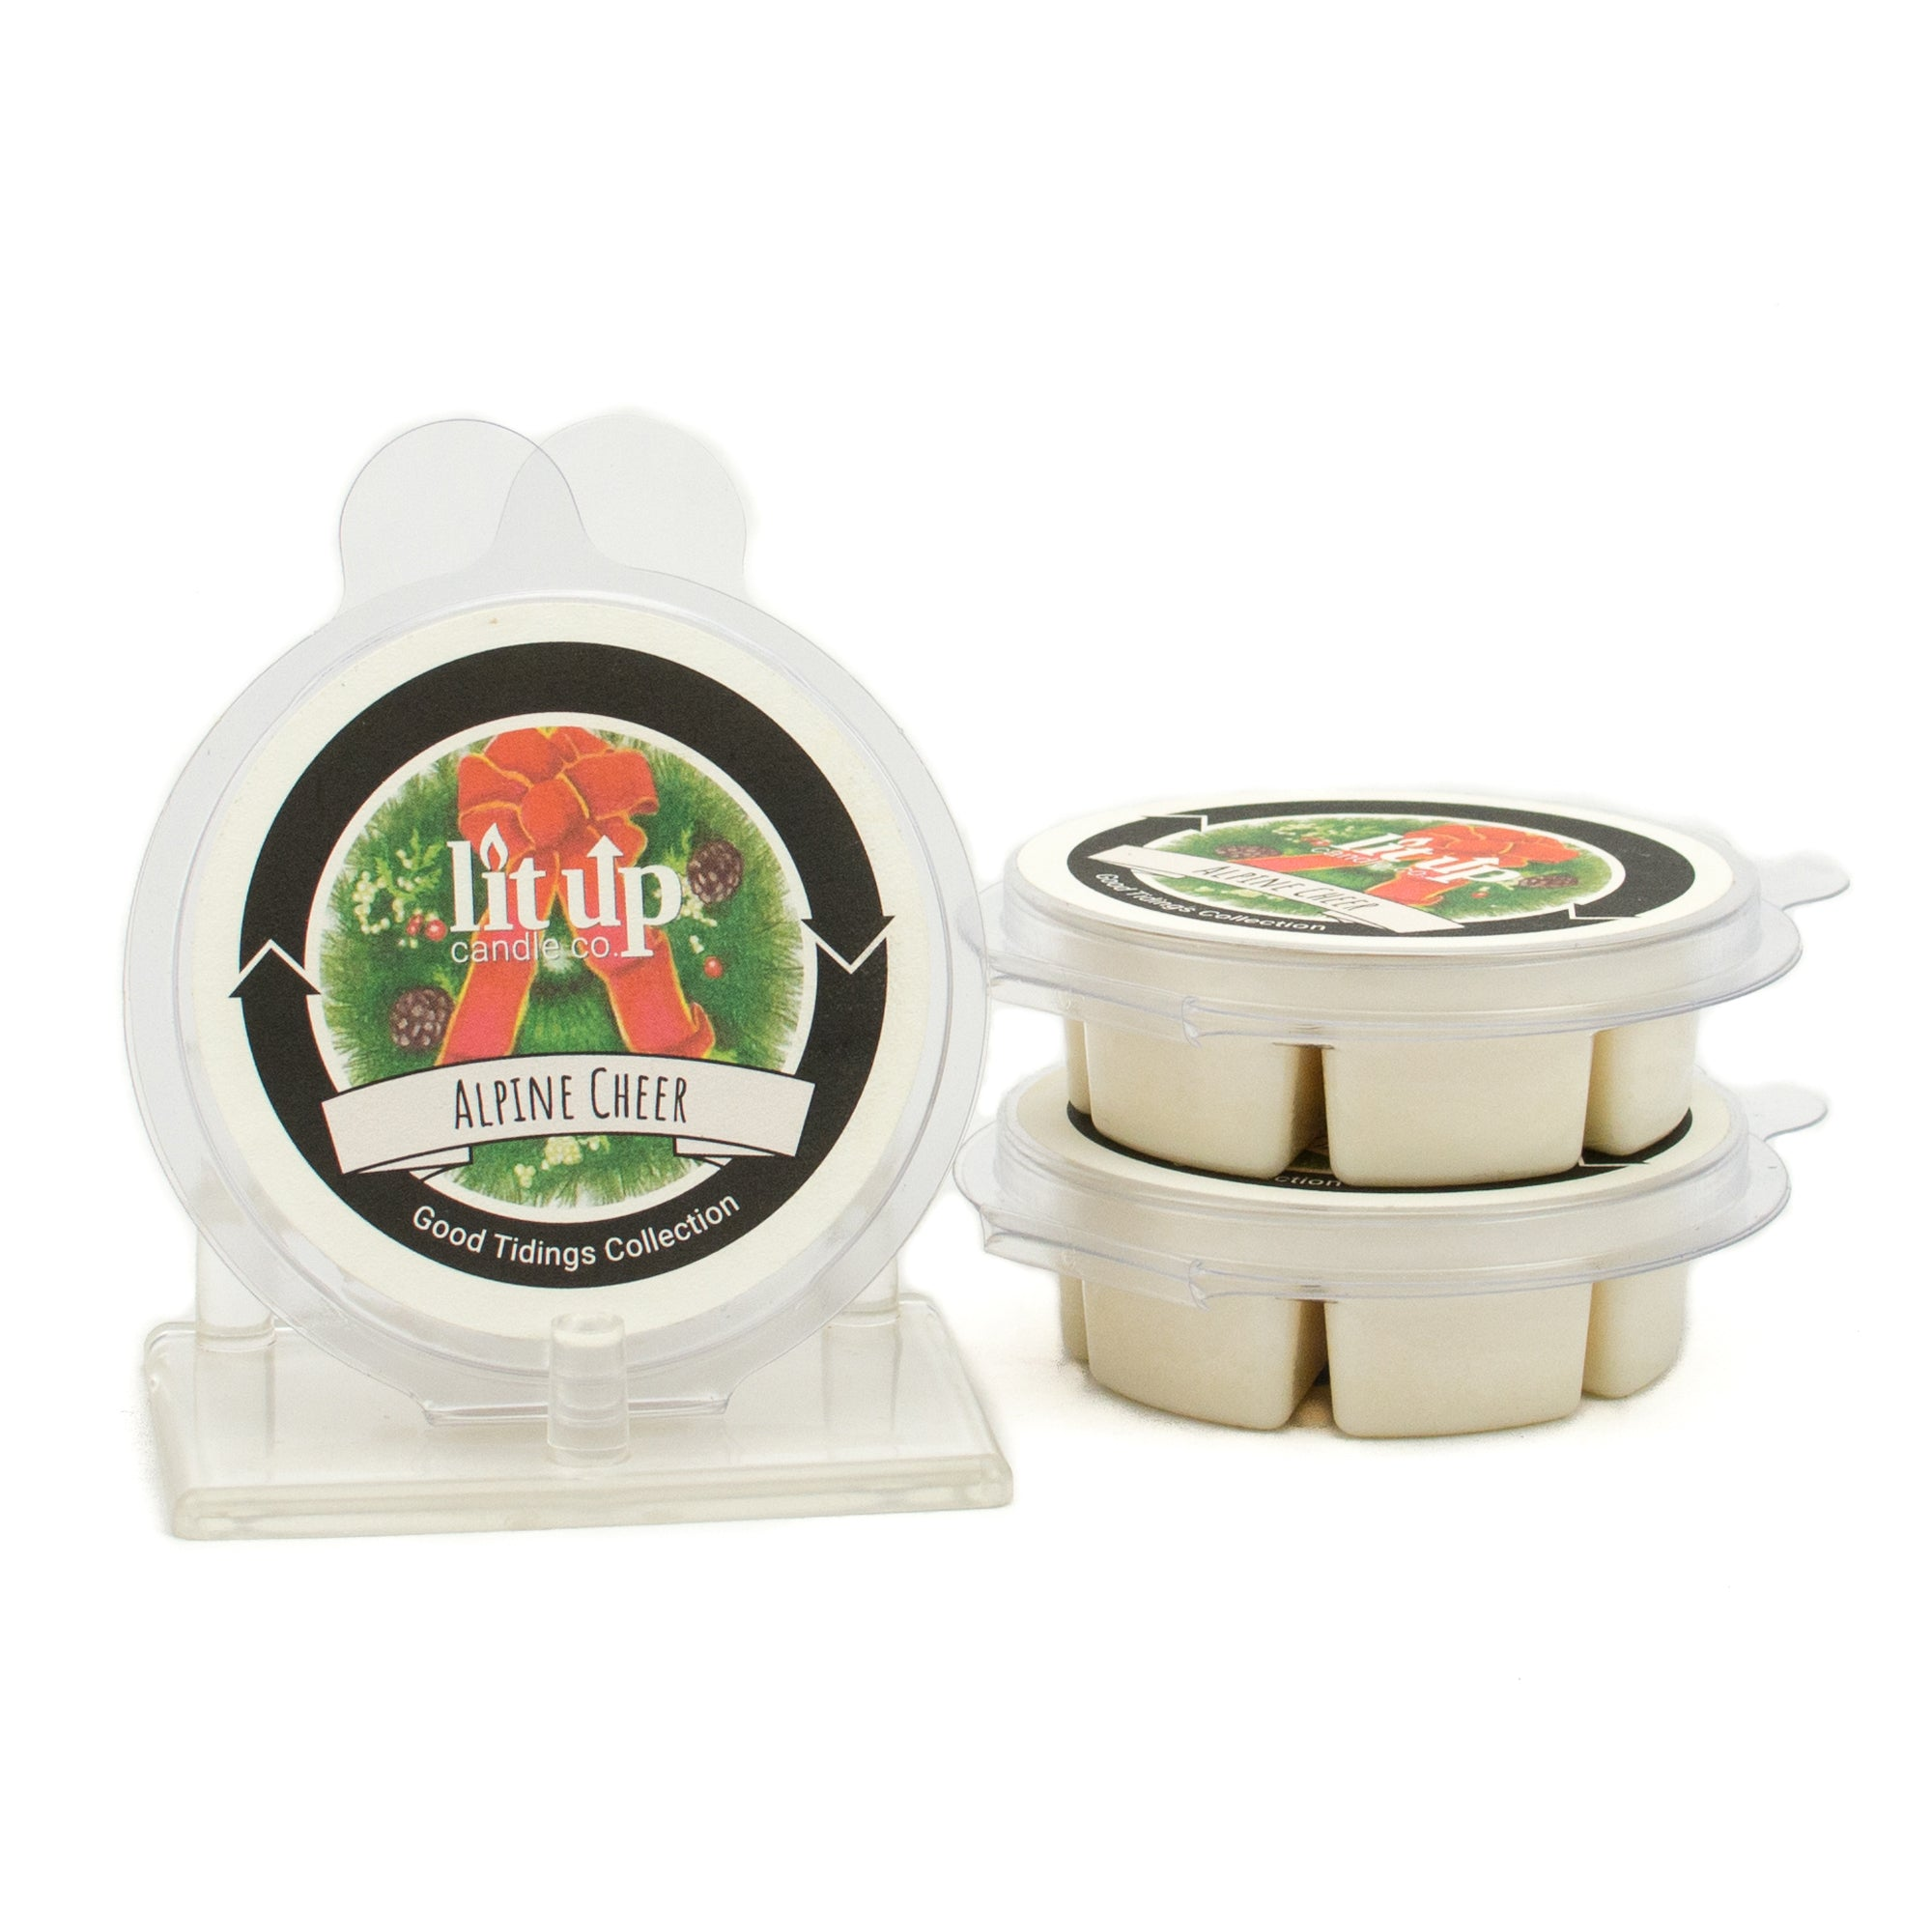 Alpine Cheer Soy Wax Melt